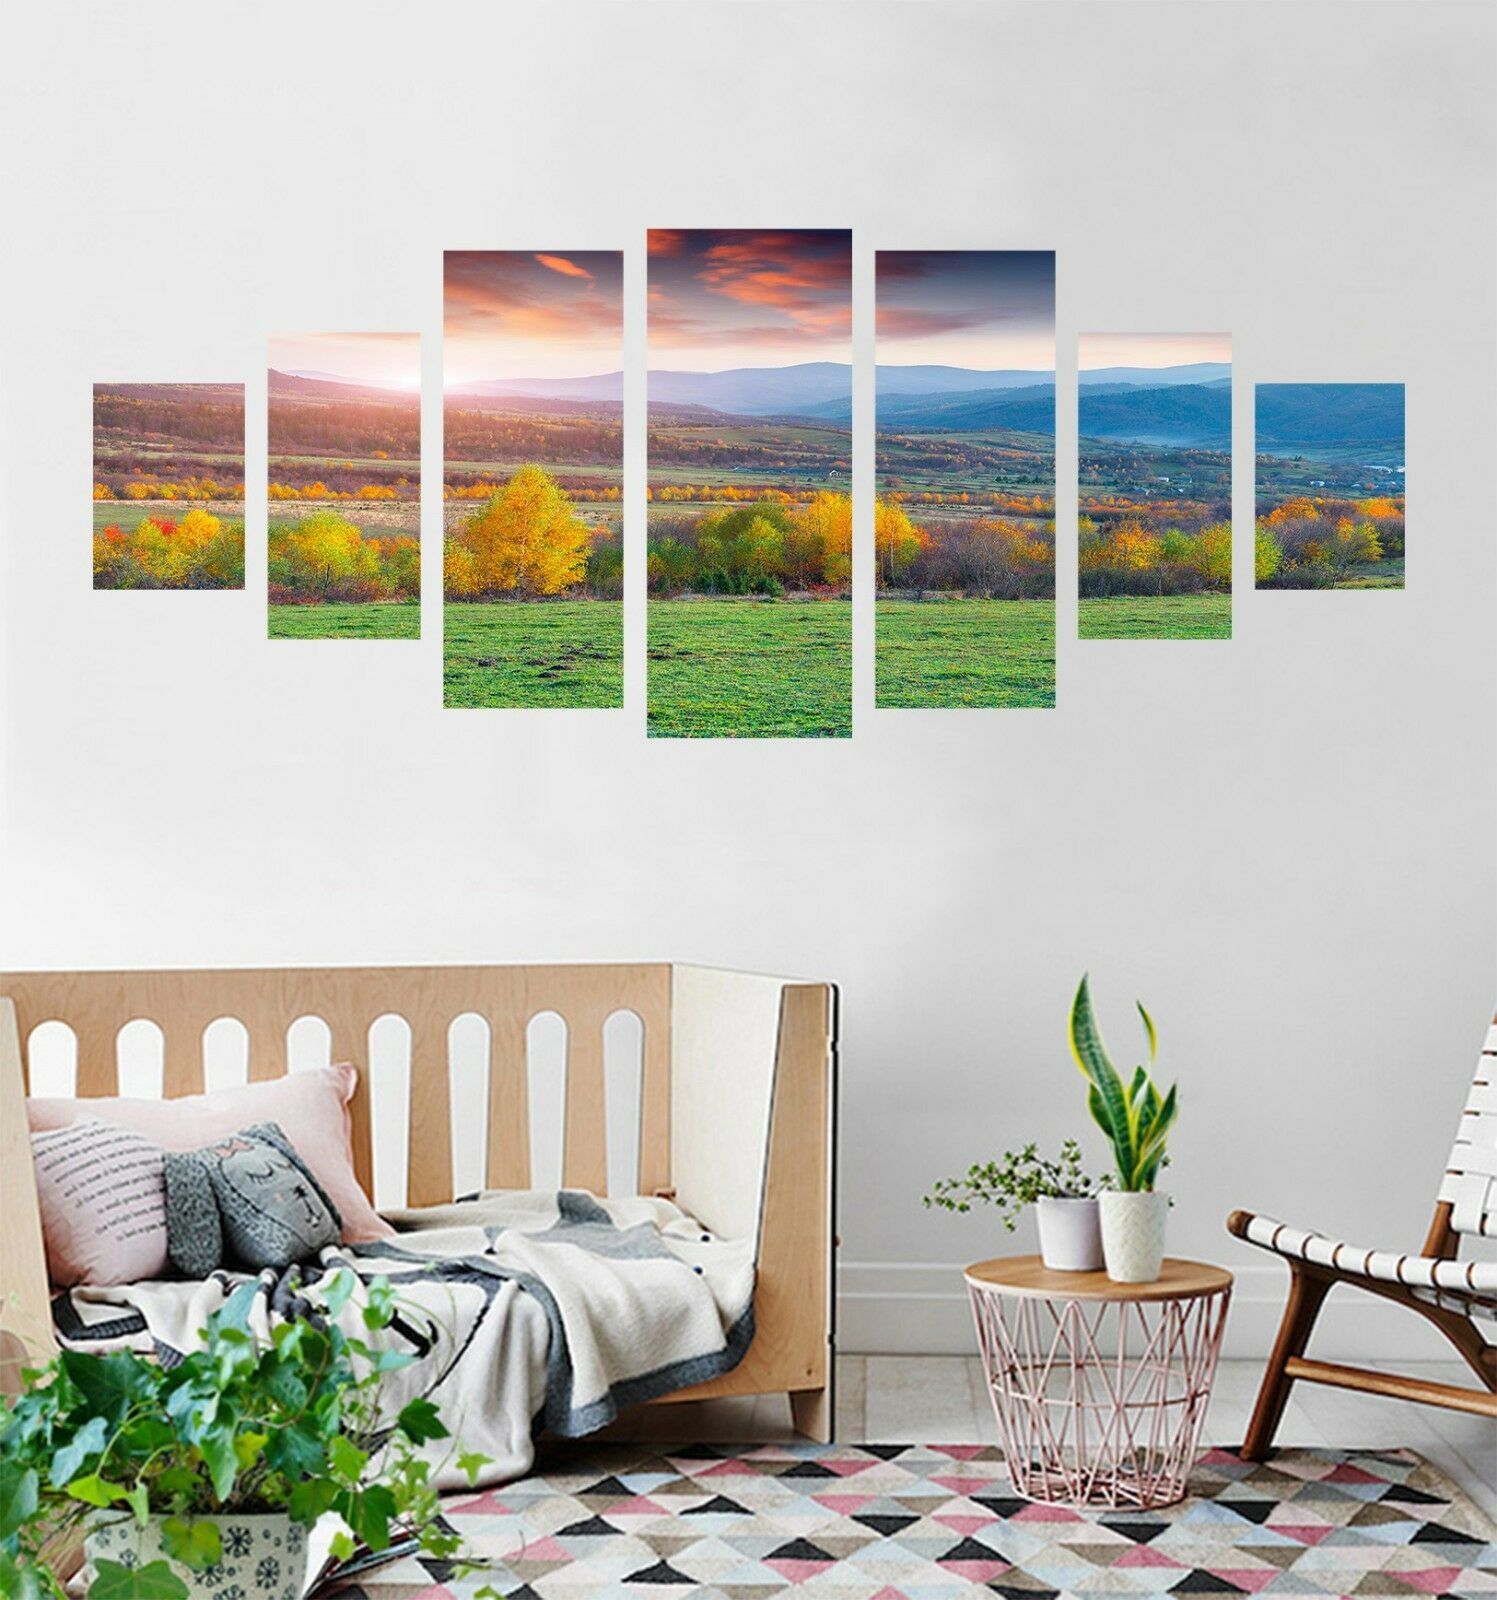 3D Grassland View 73 Unframed Print Wall Paper Decal Wall Deco Indoor AJ Jenny